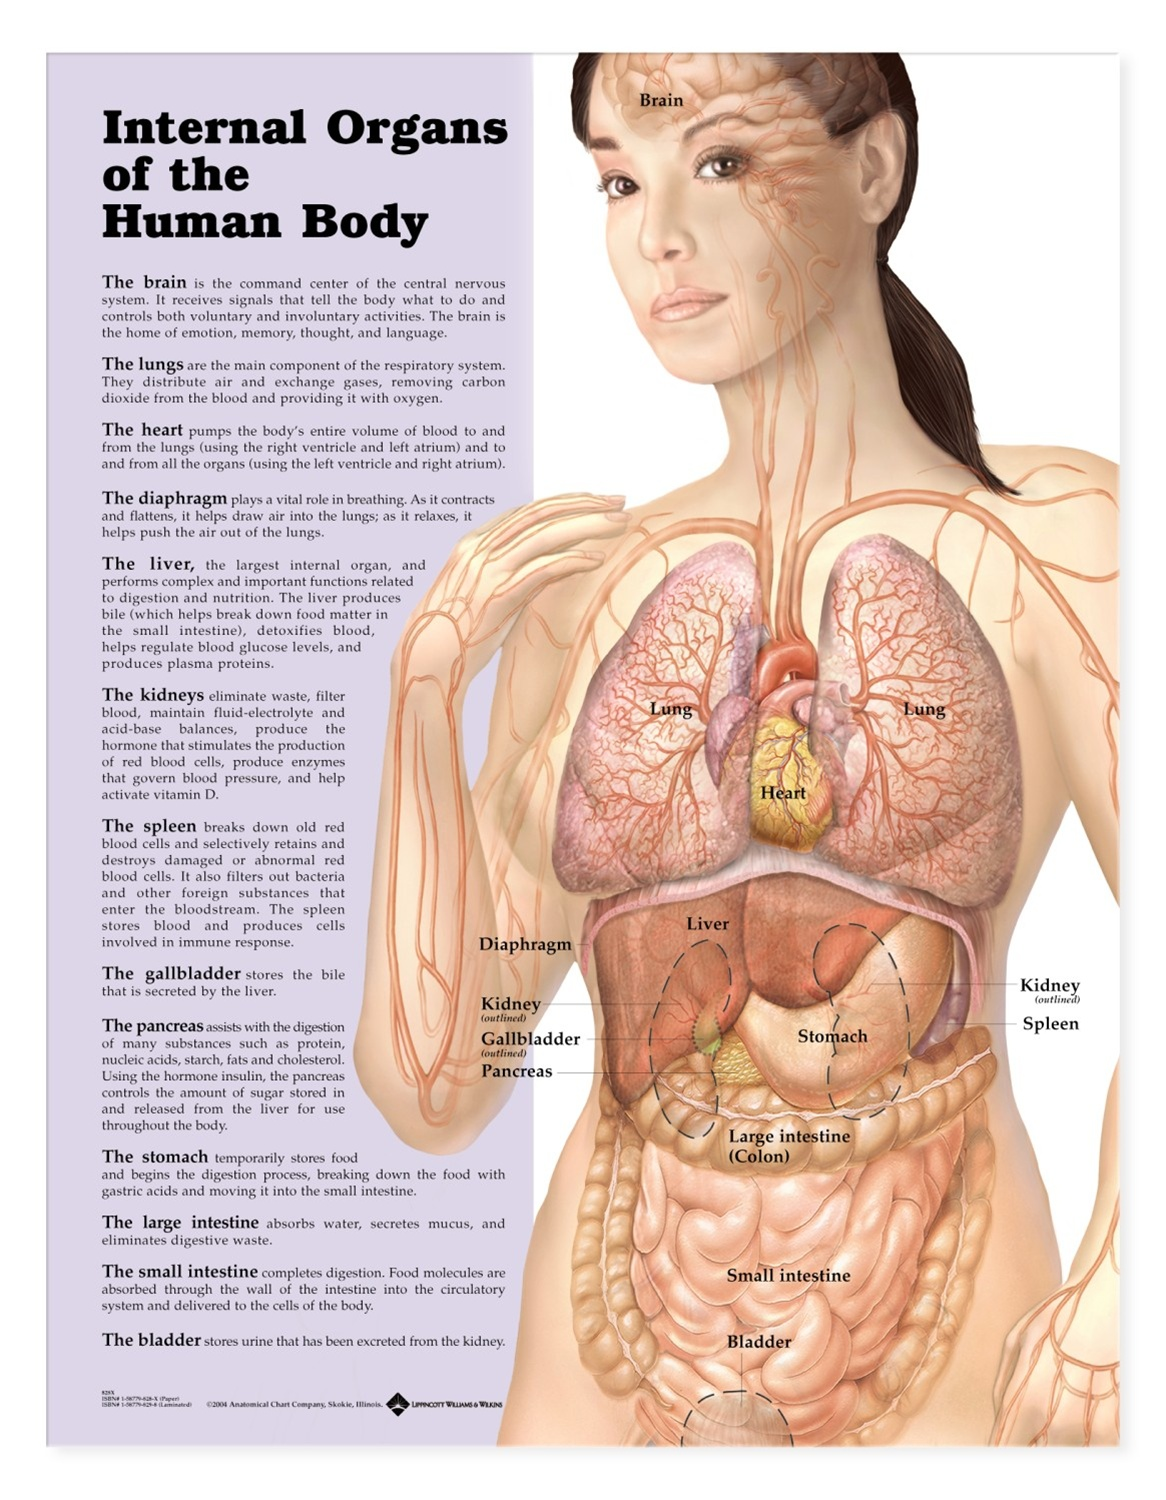 Internal Organs of the Human Body Anatomical Chart - Anatomy Models ...